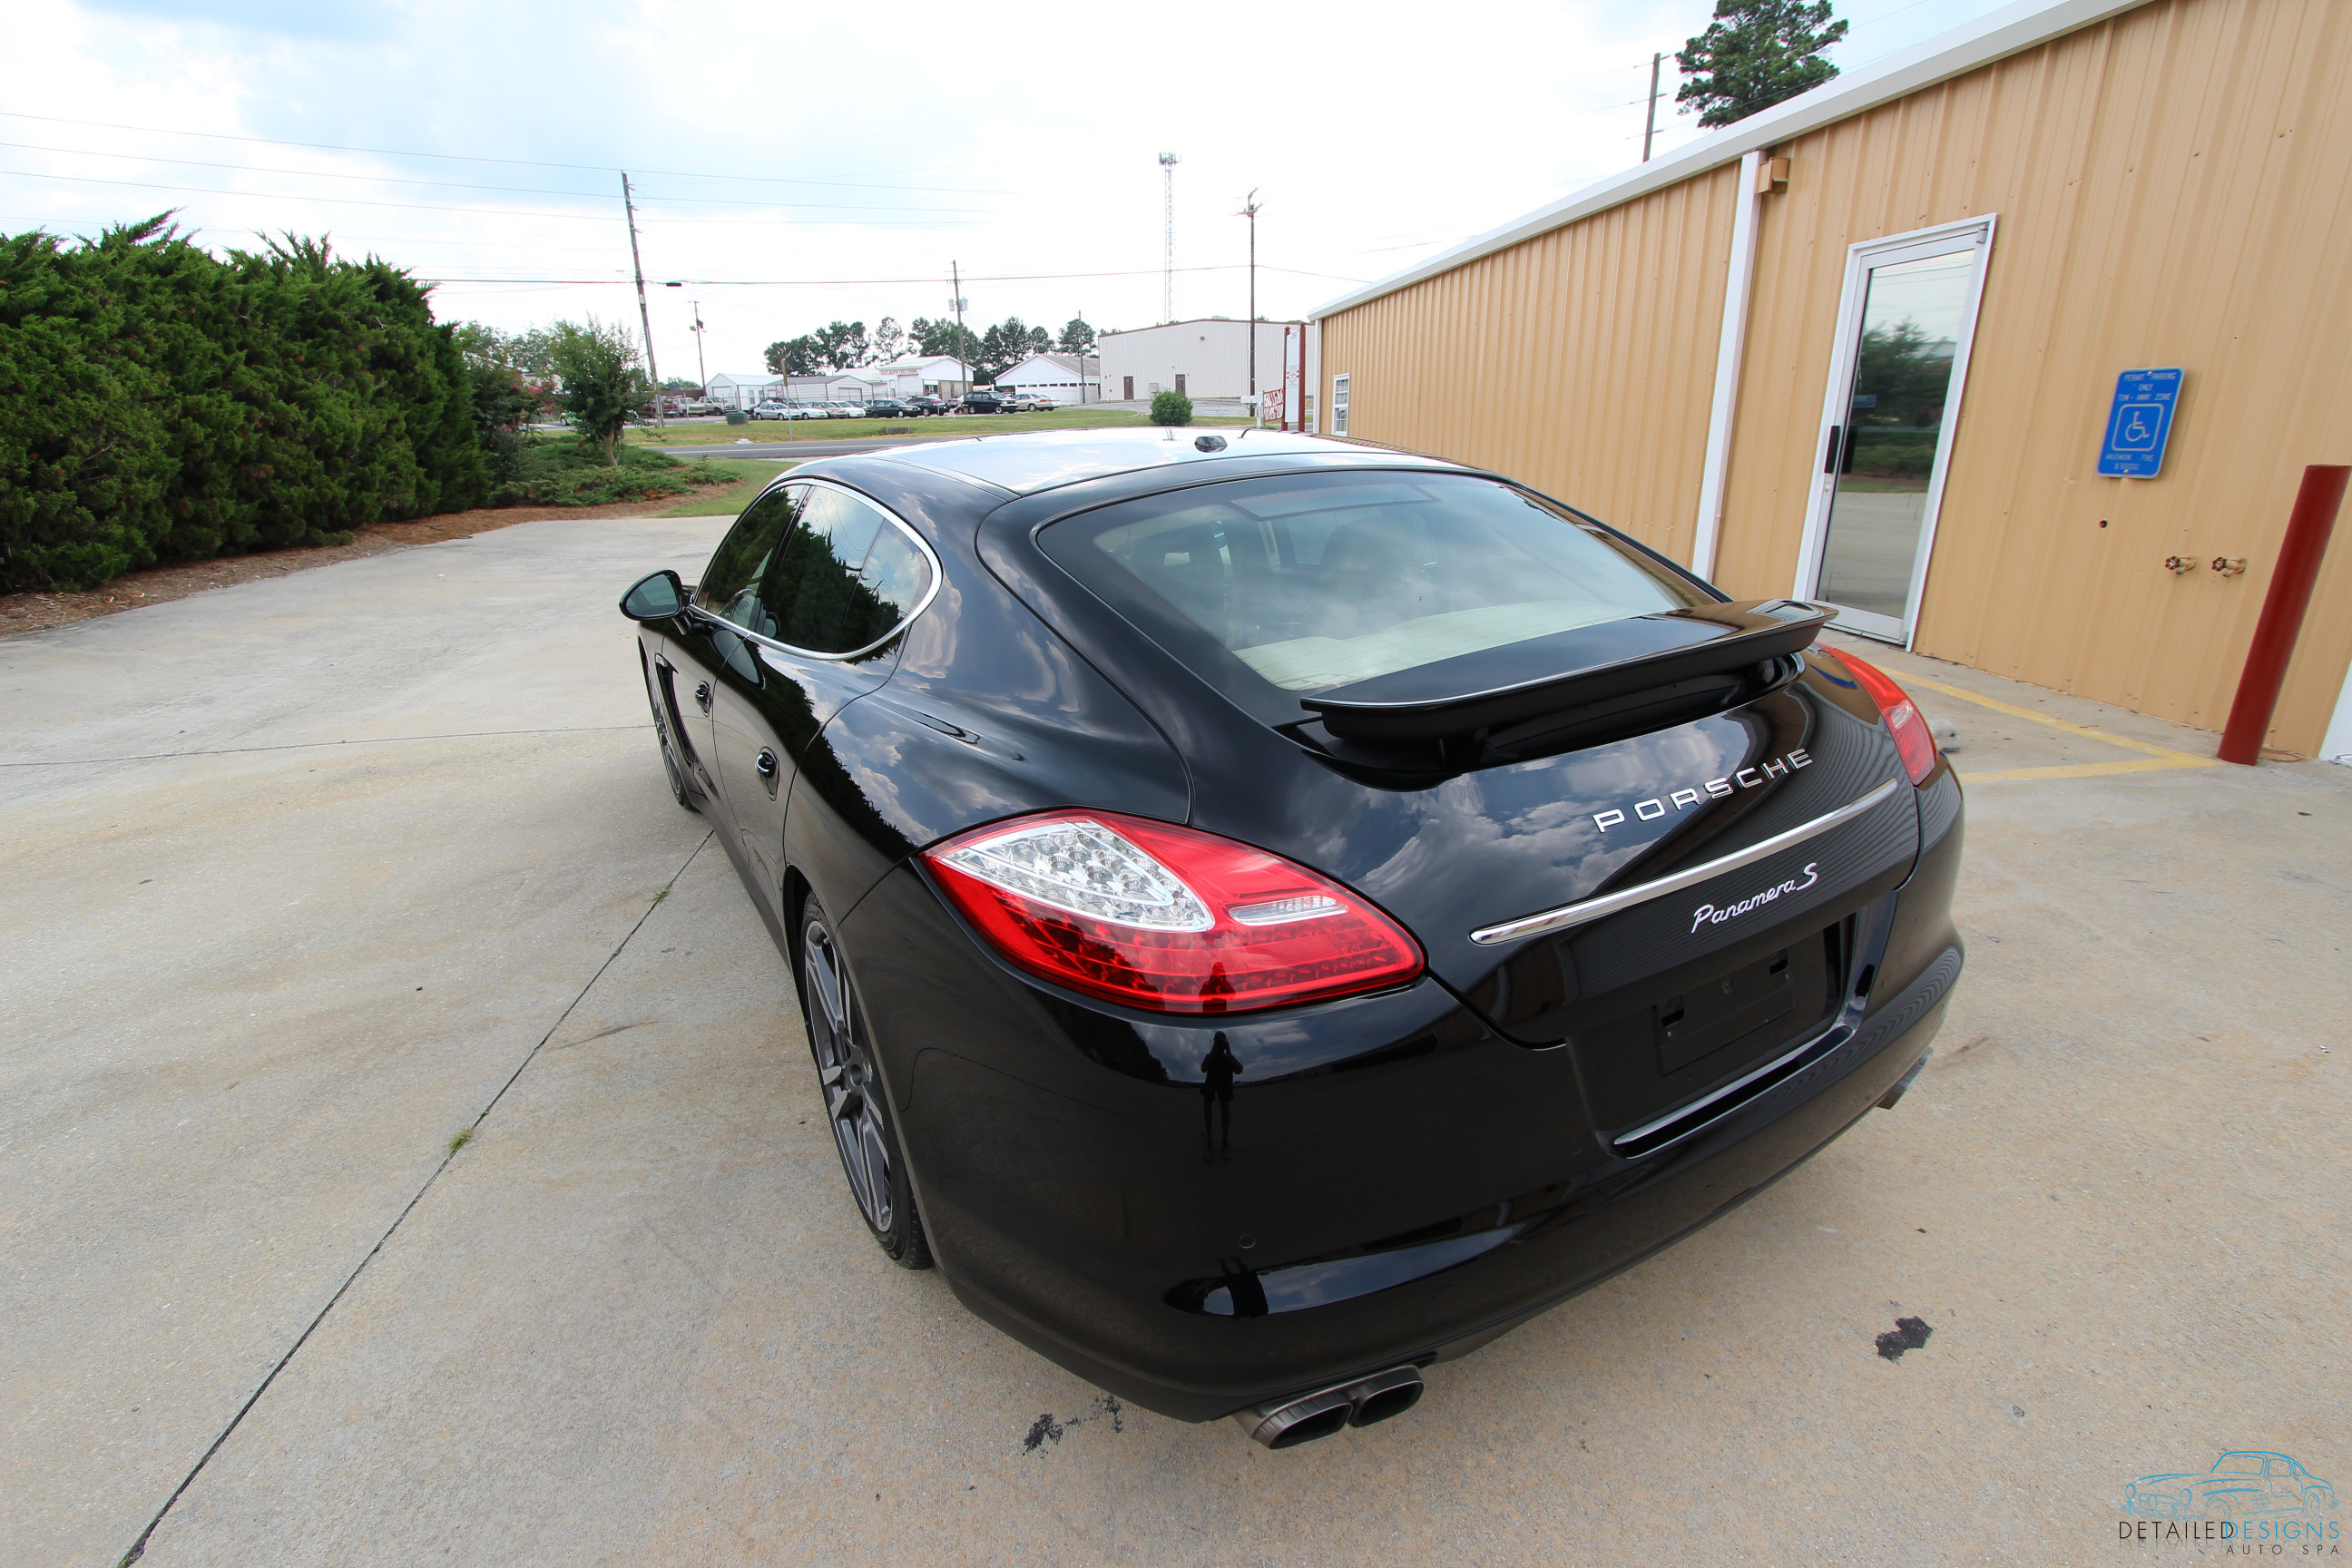 Car Painting Atlanta Of Porsche Restored Then Protected With Ppf Cquartz Finest